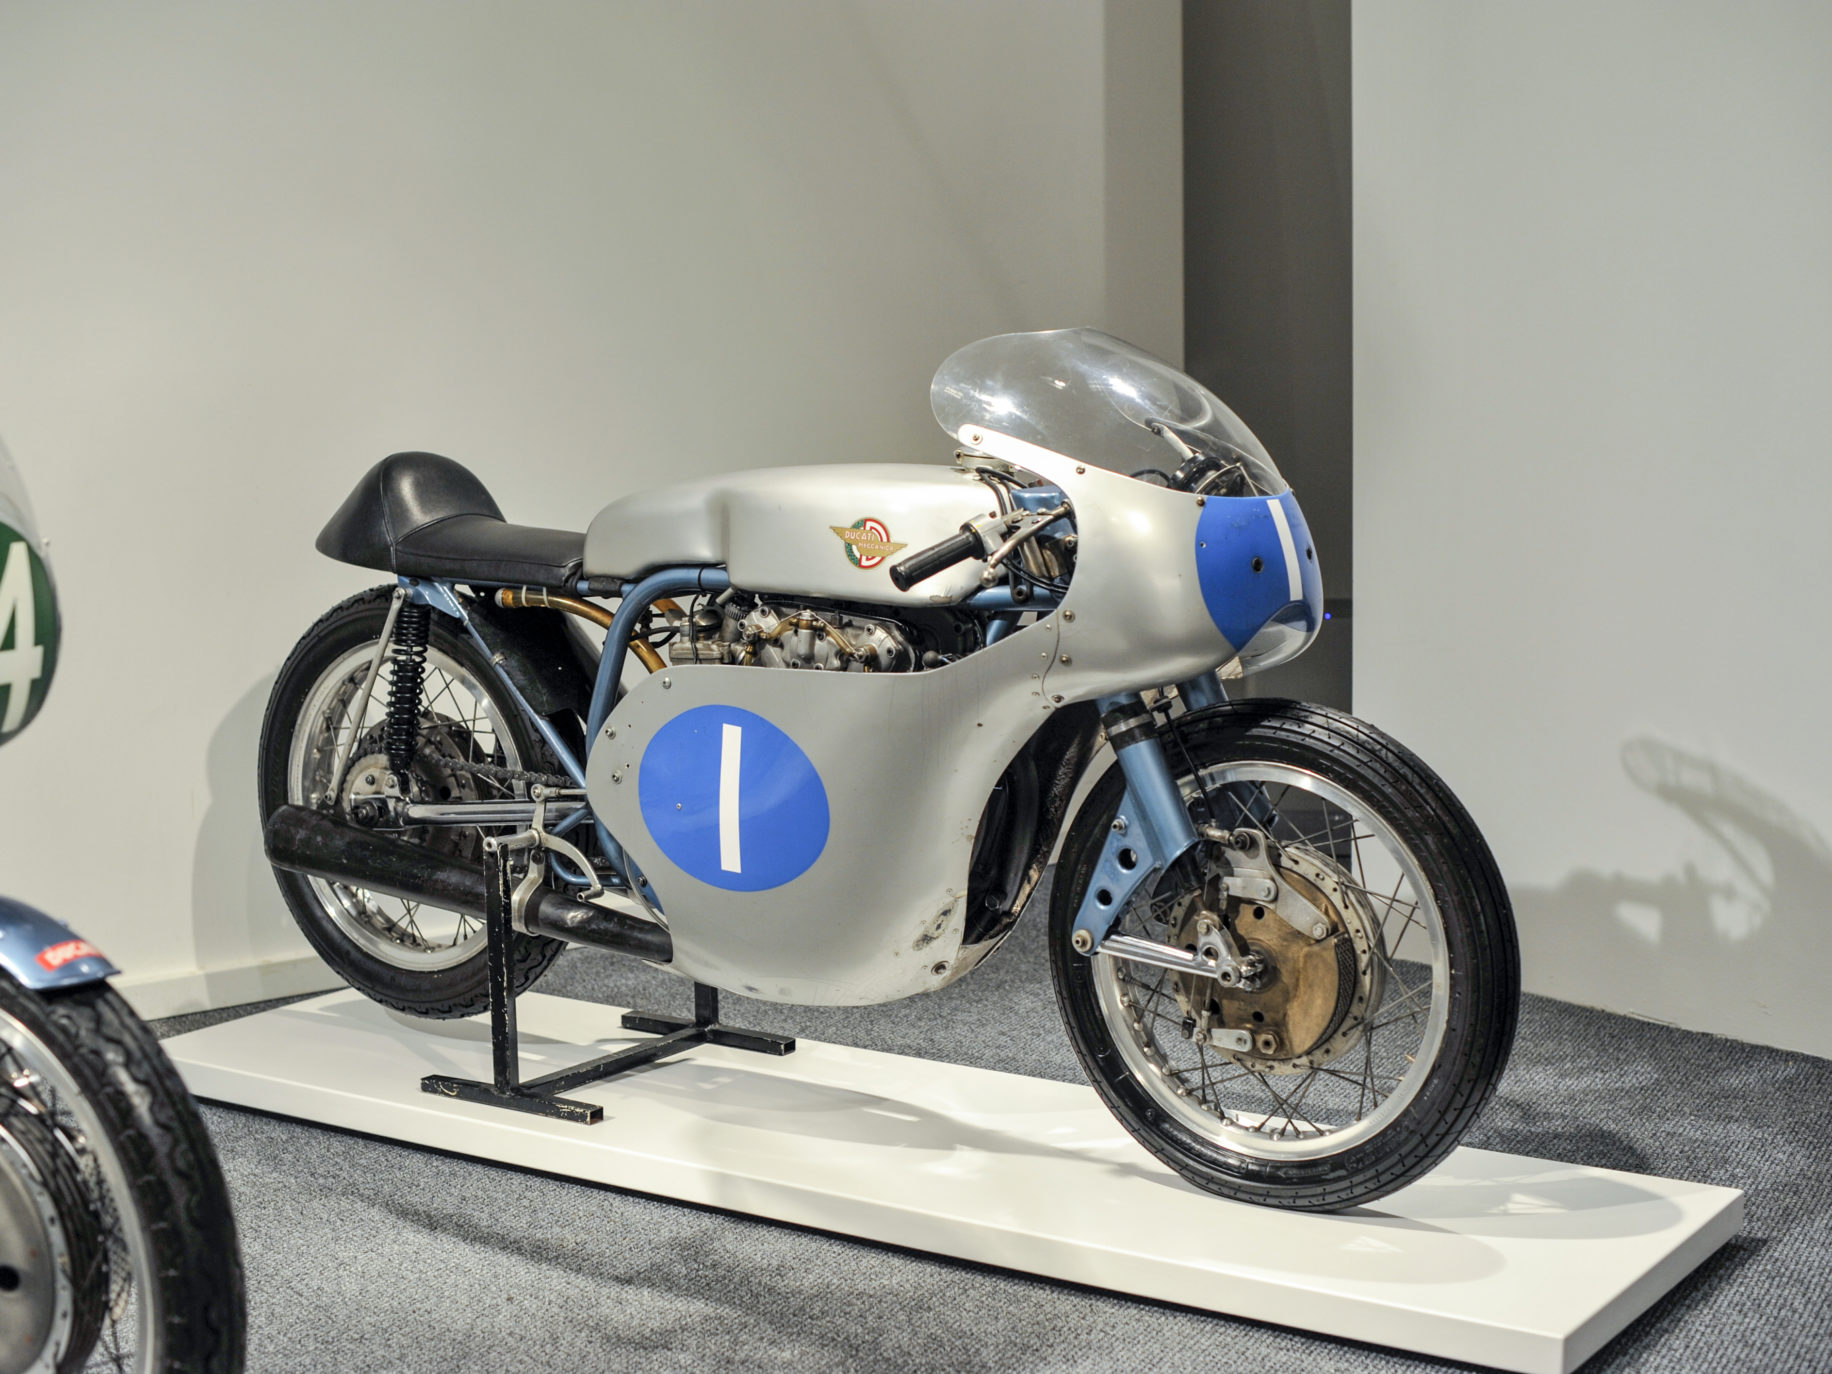 First Temporary Exhibition Hosted By The Ducati Museum Gets Under Way